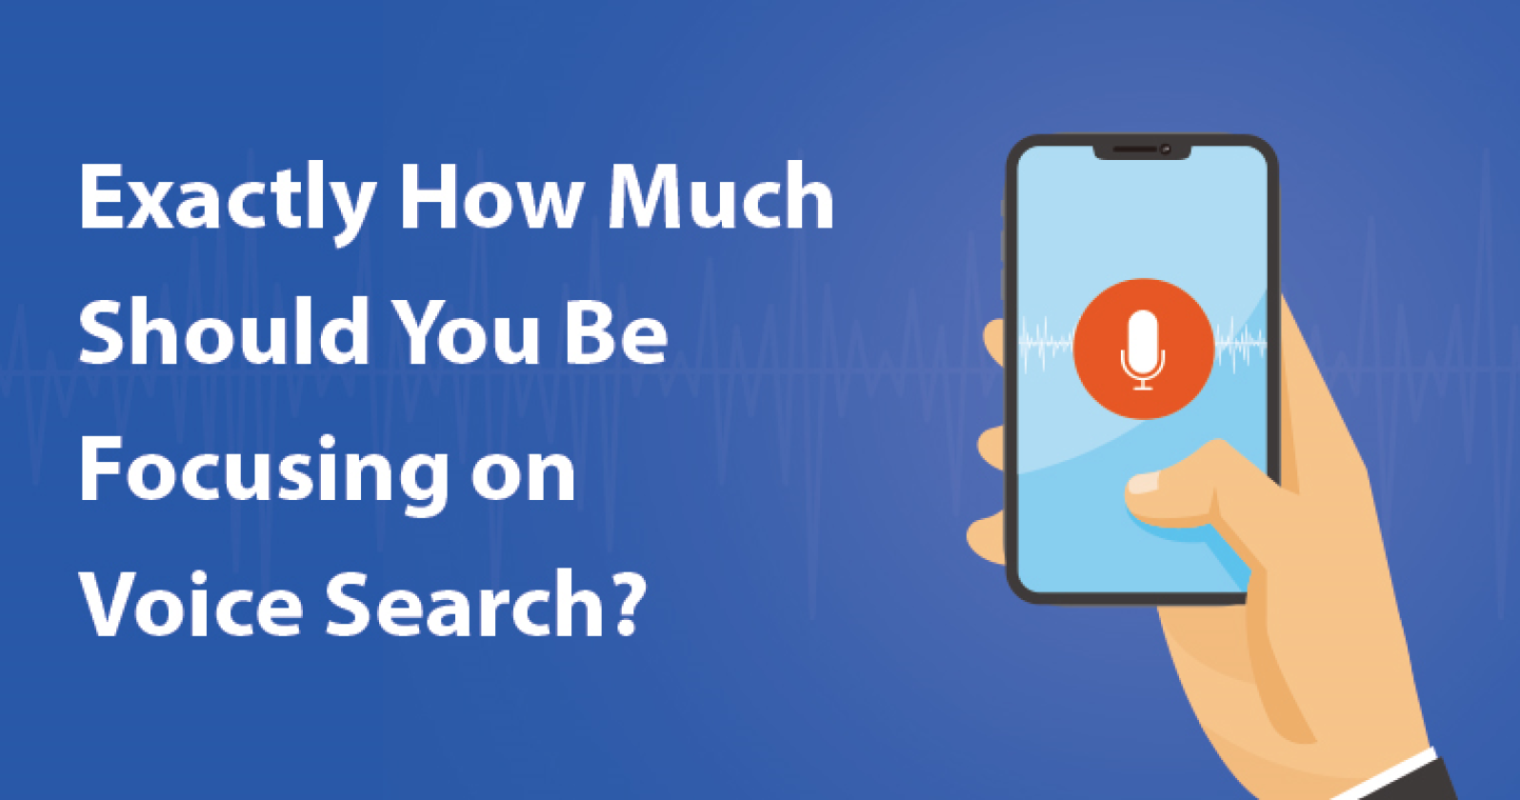 Exactly How Much Should You Be Focusing on Voice Search?